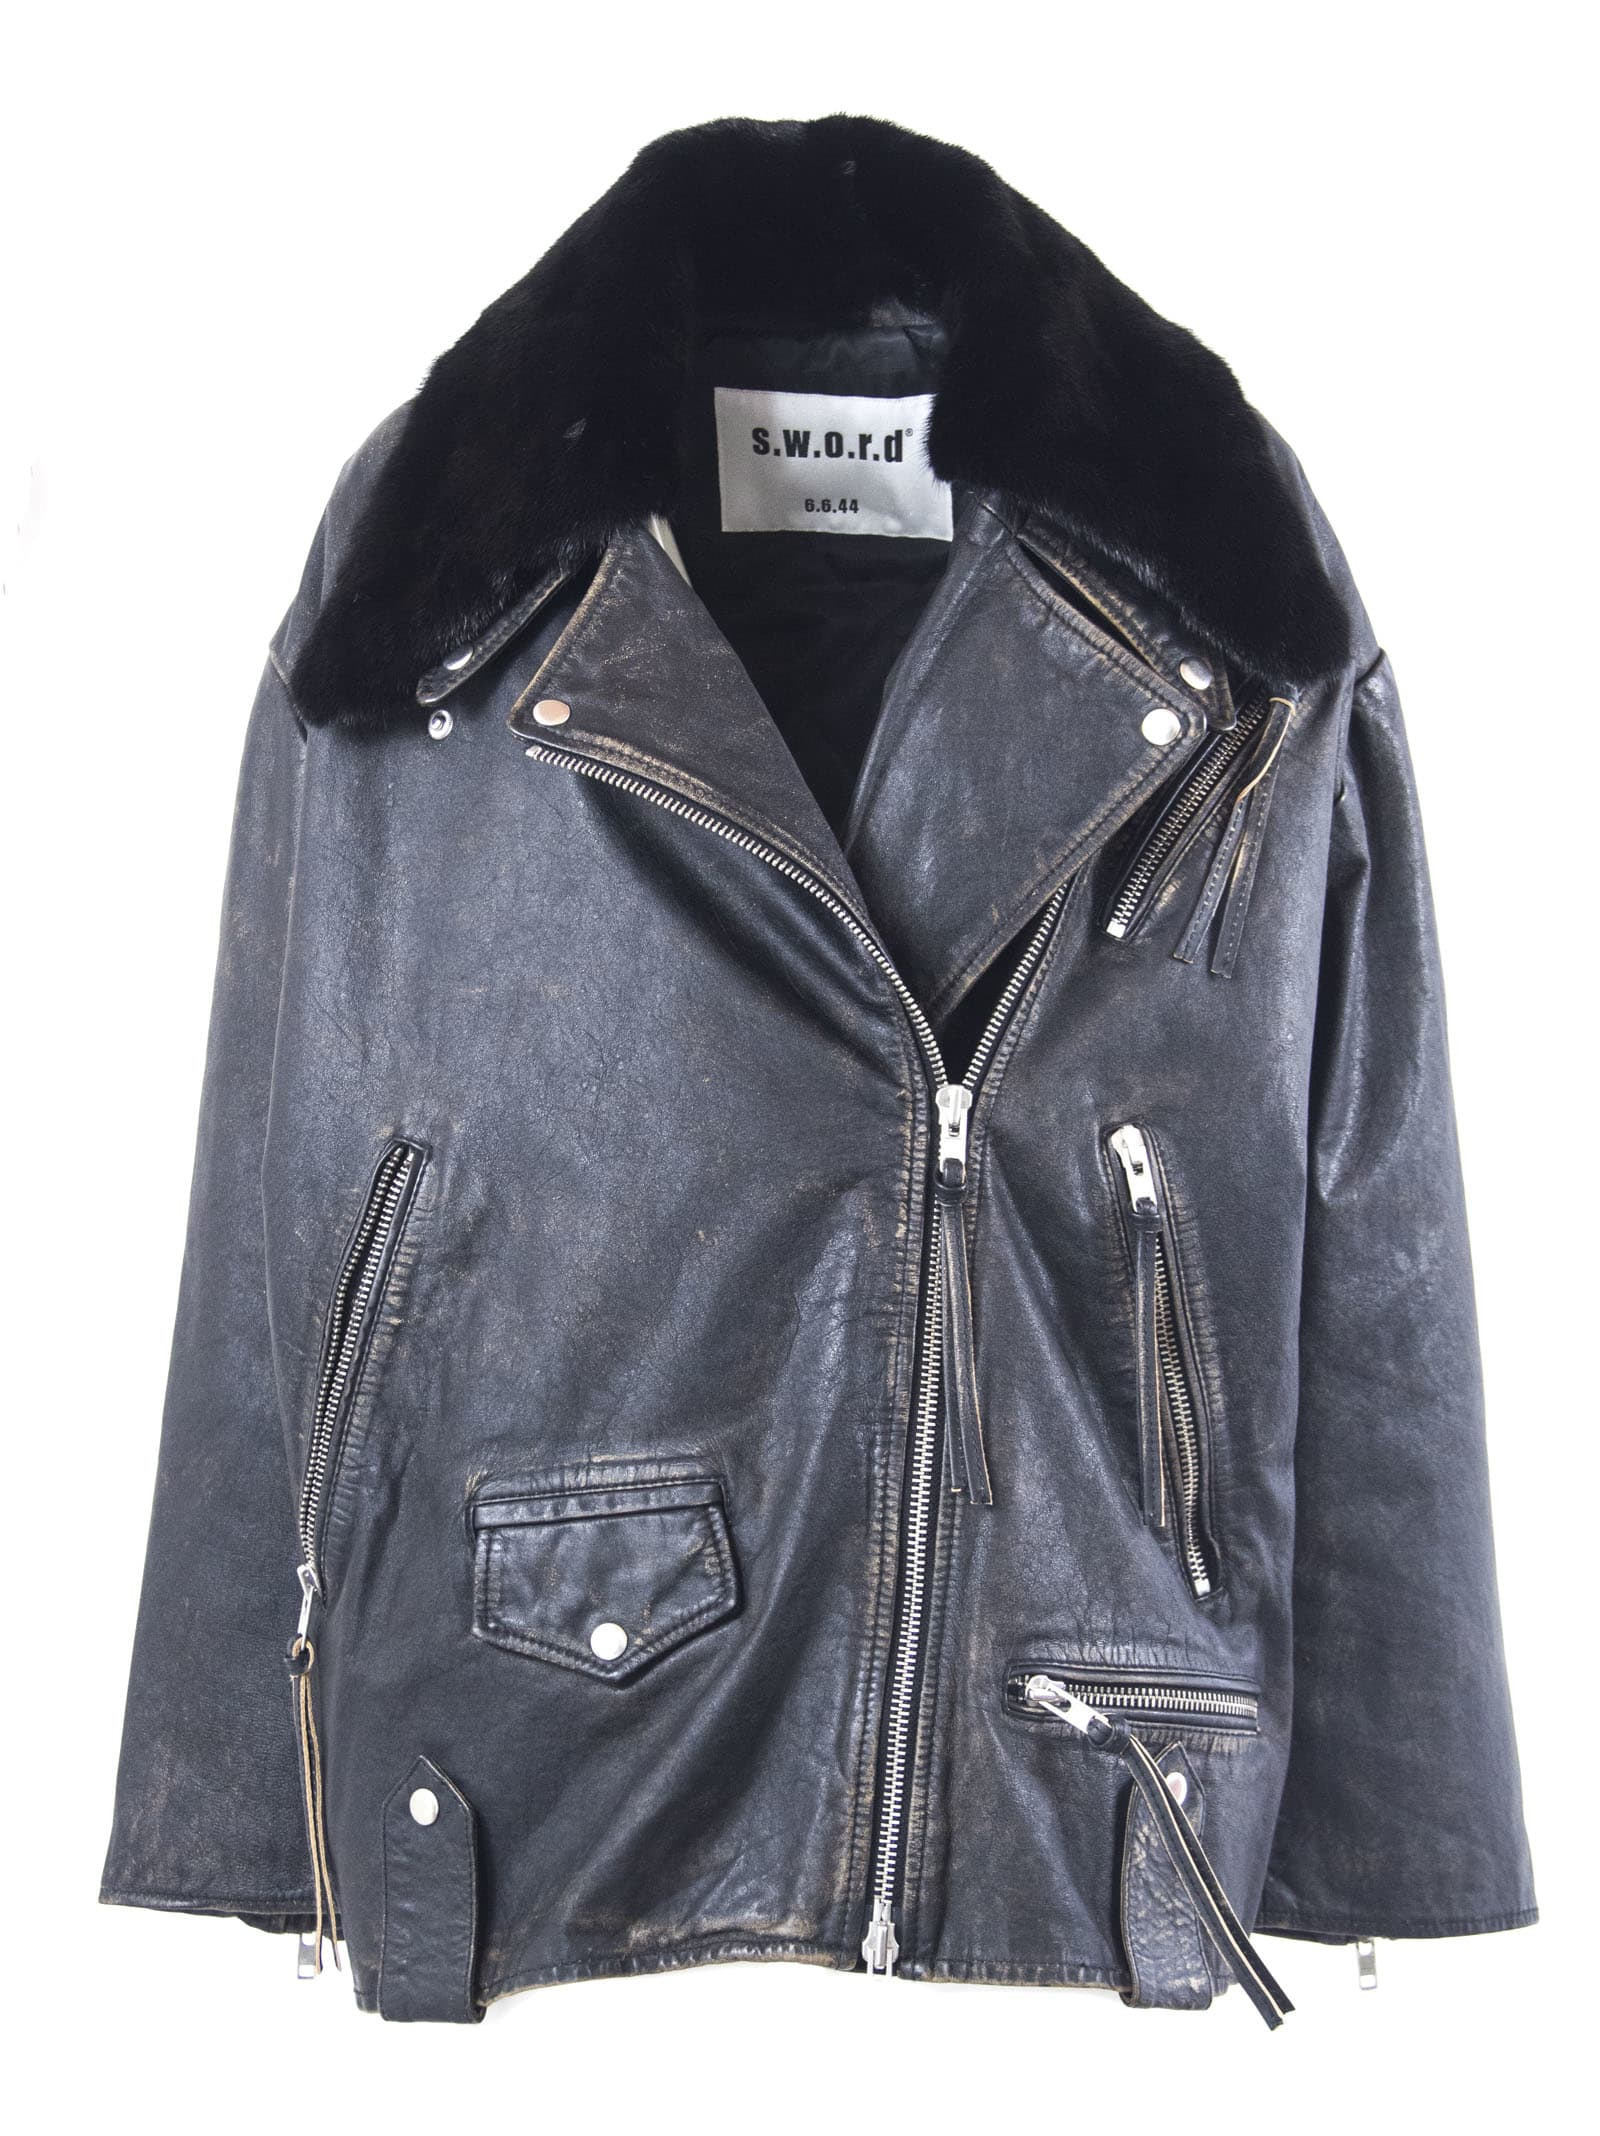 S.W.O.R.D 6.6.44 Black Lambskin Zip-up Biker Jacket